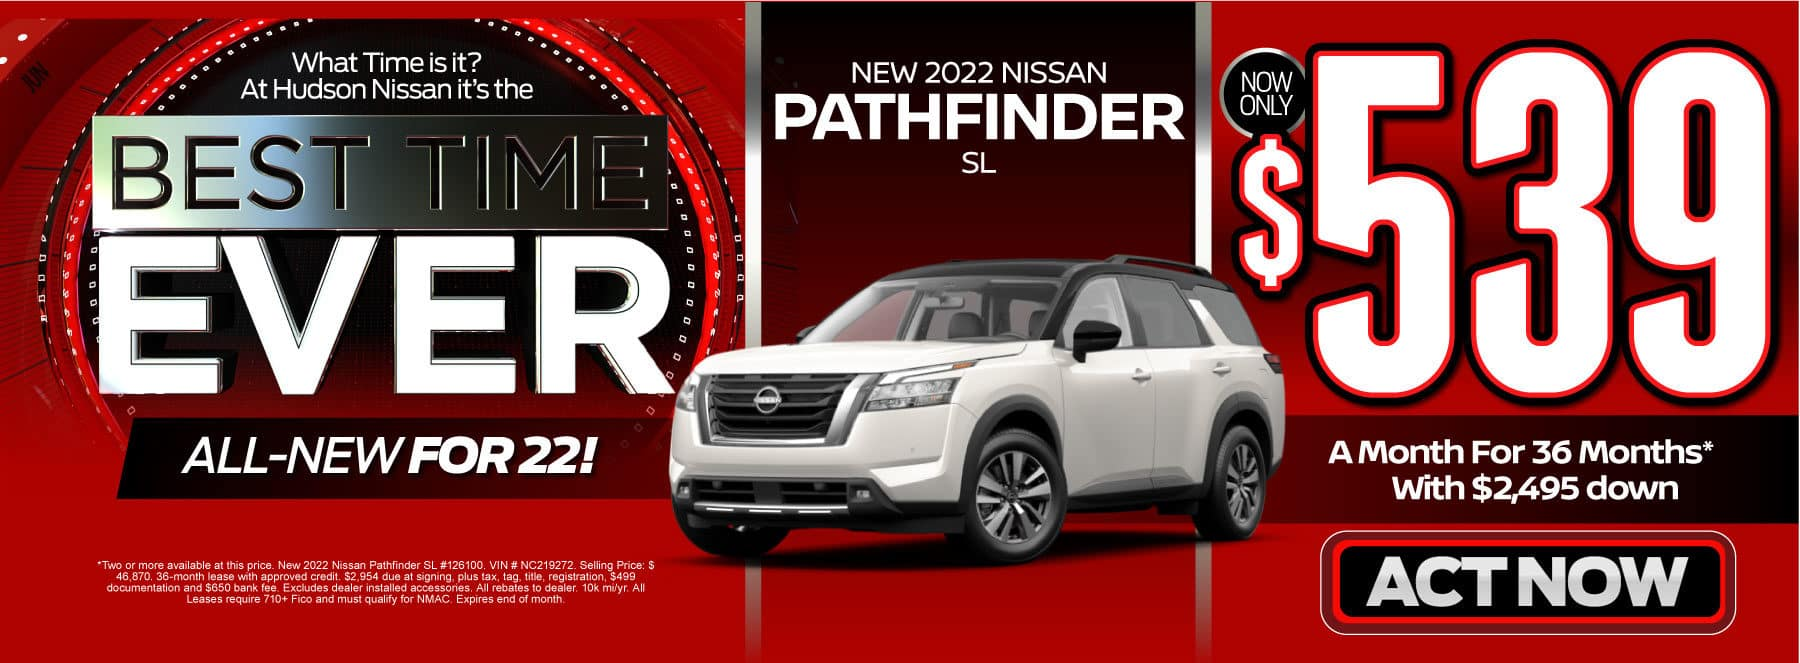 New 2022 Nissan Pathfinder SL now only $539 a month for 36 mos. with $2,495 down. Act now.